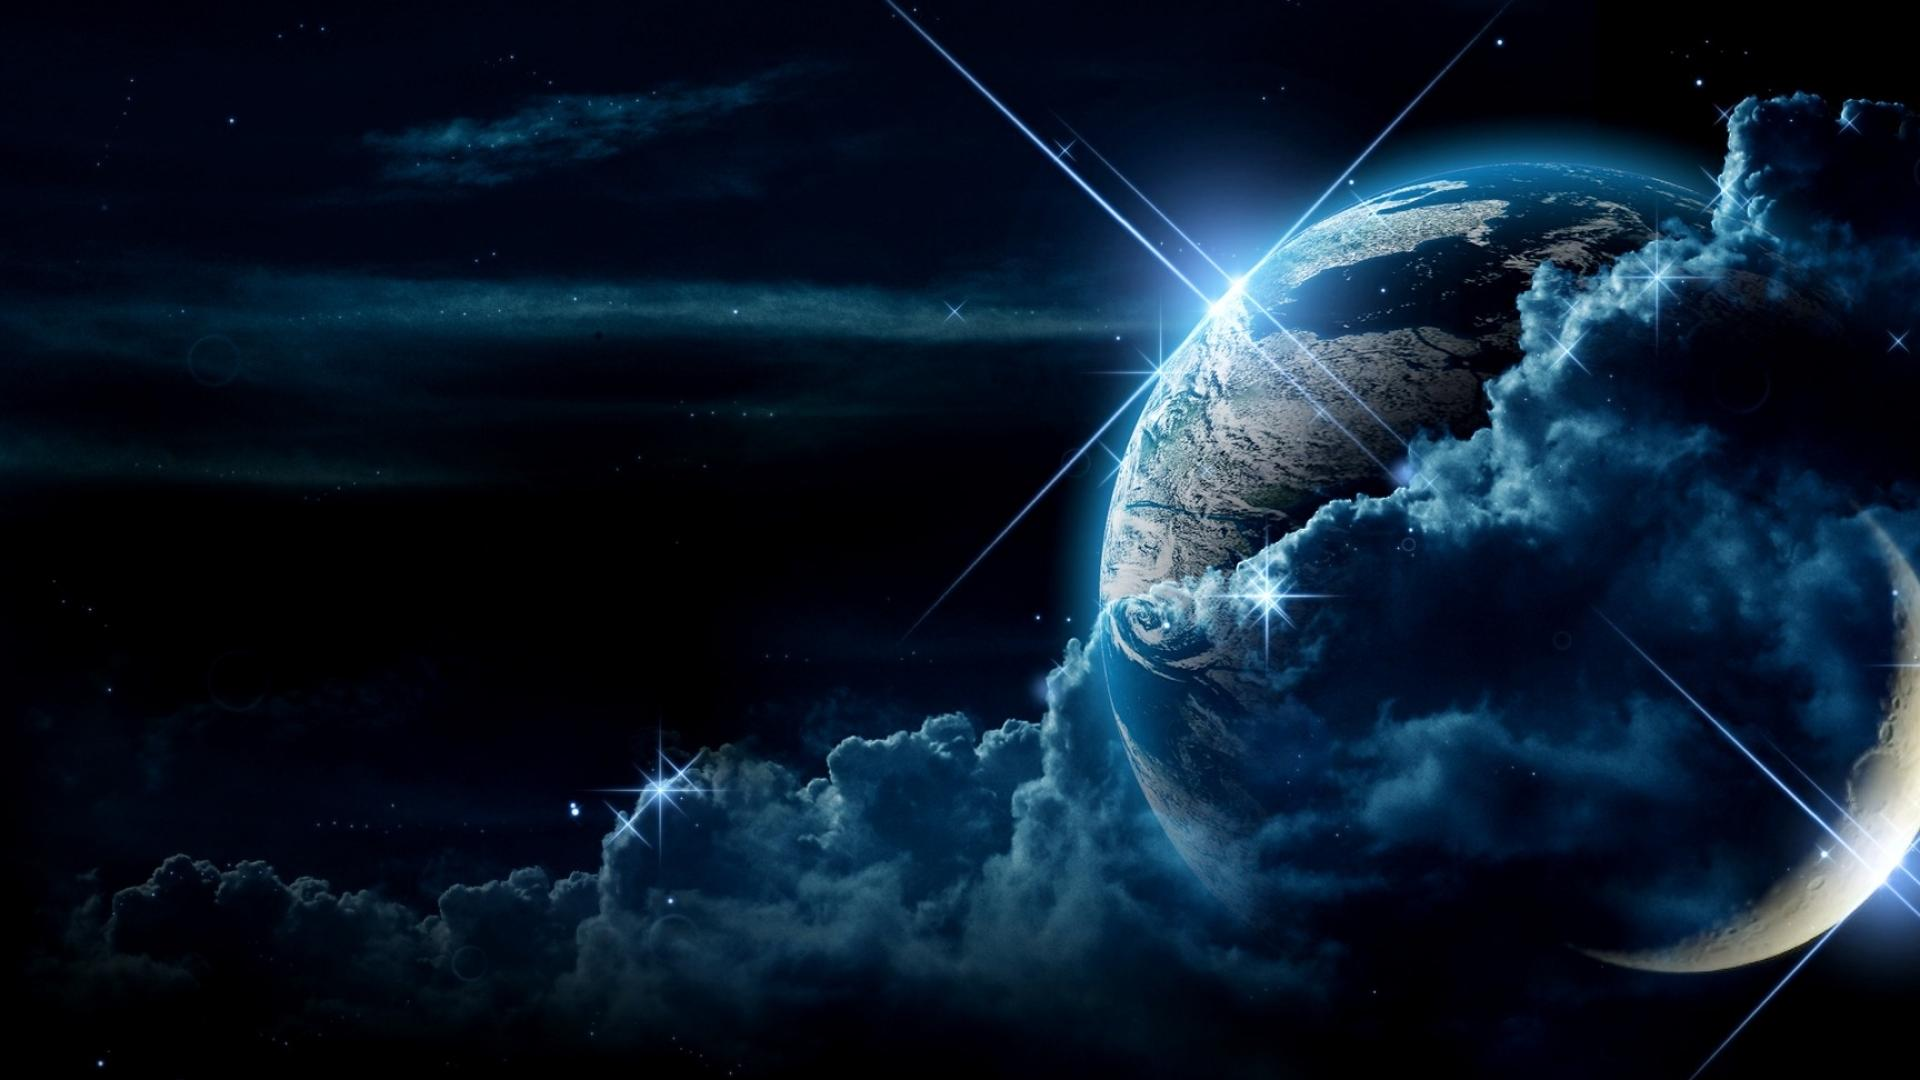 Earth Space Backgrounds   HD Wallpapers 1920x1080